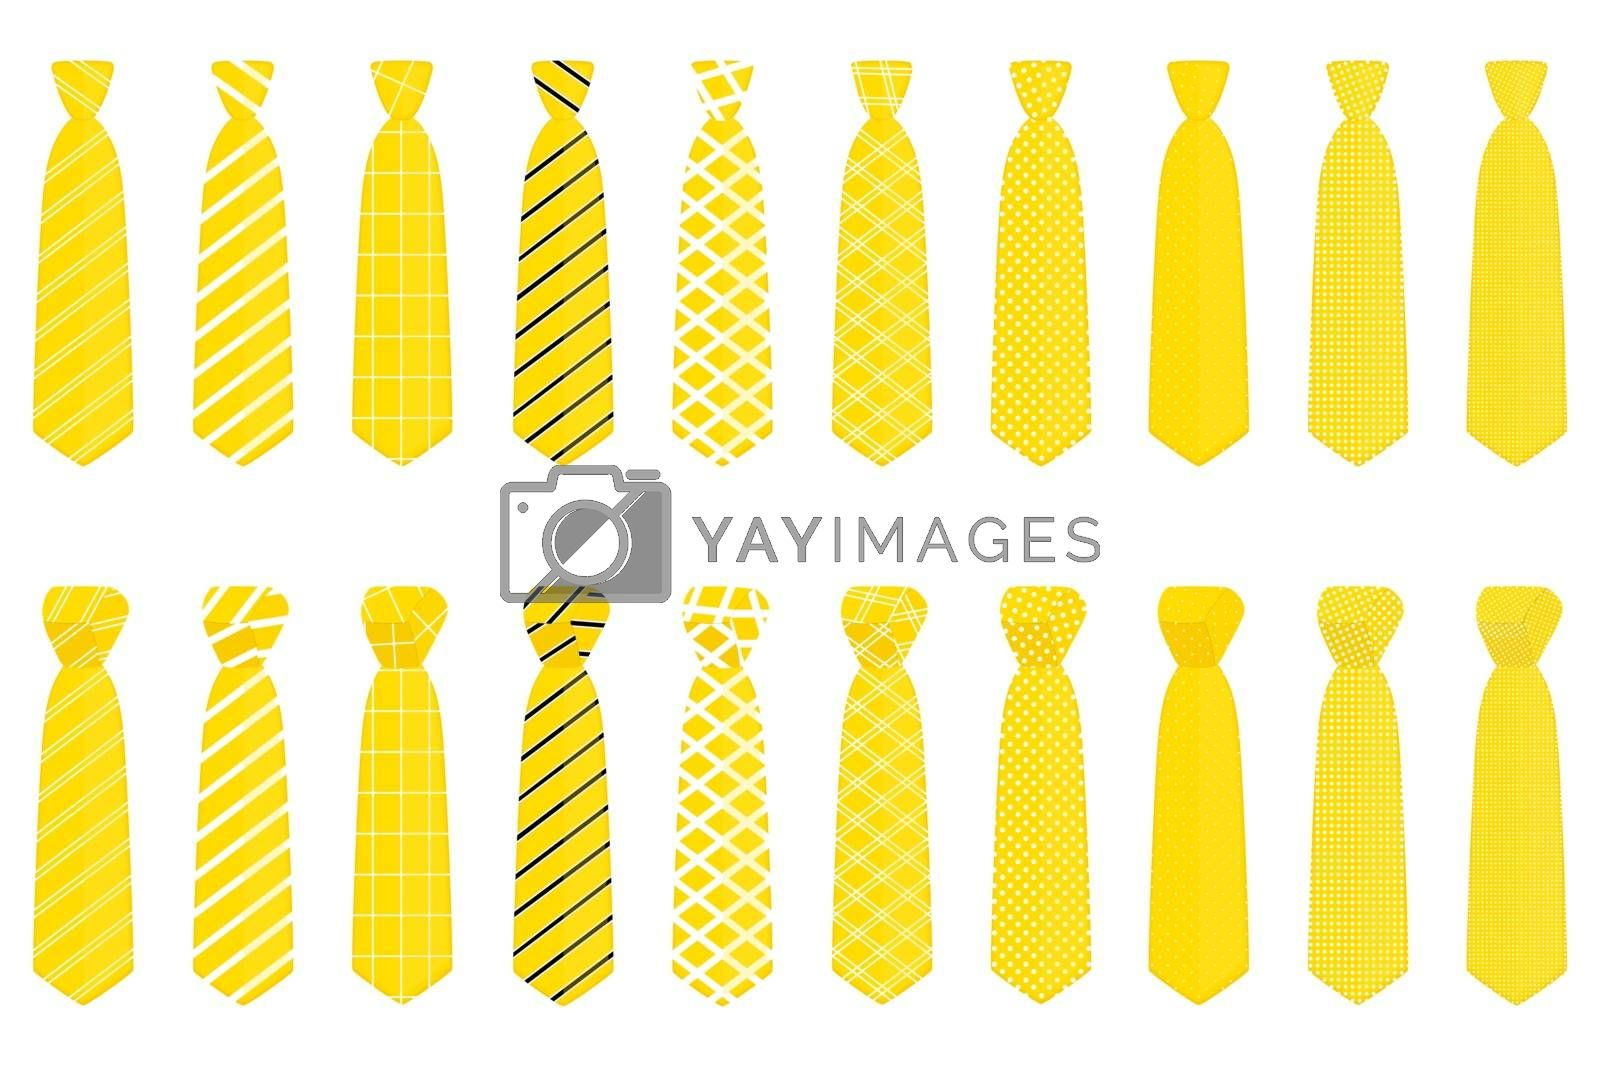 Illustration on theme big set ties different types, neckties various size. Tie pattern consisting of collection textile garments necktie for celebration vacation. Necktie tie is accessory brutal man.